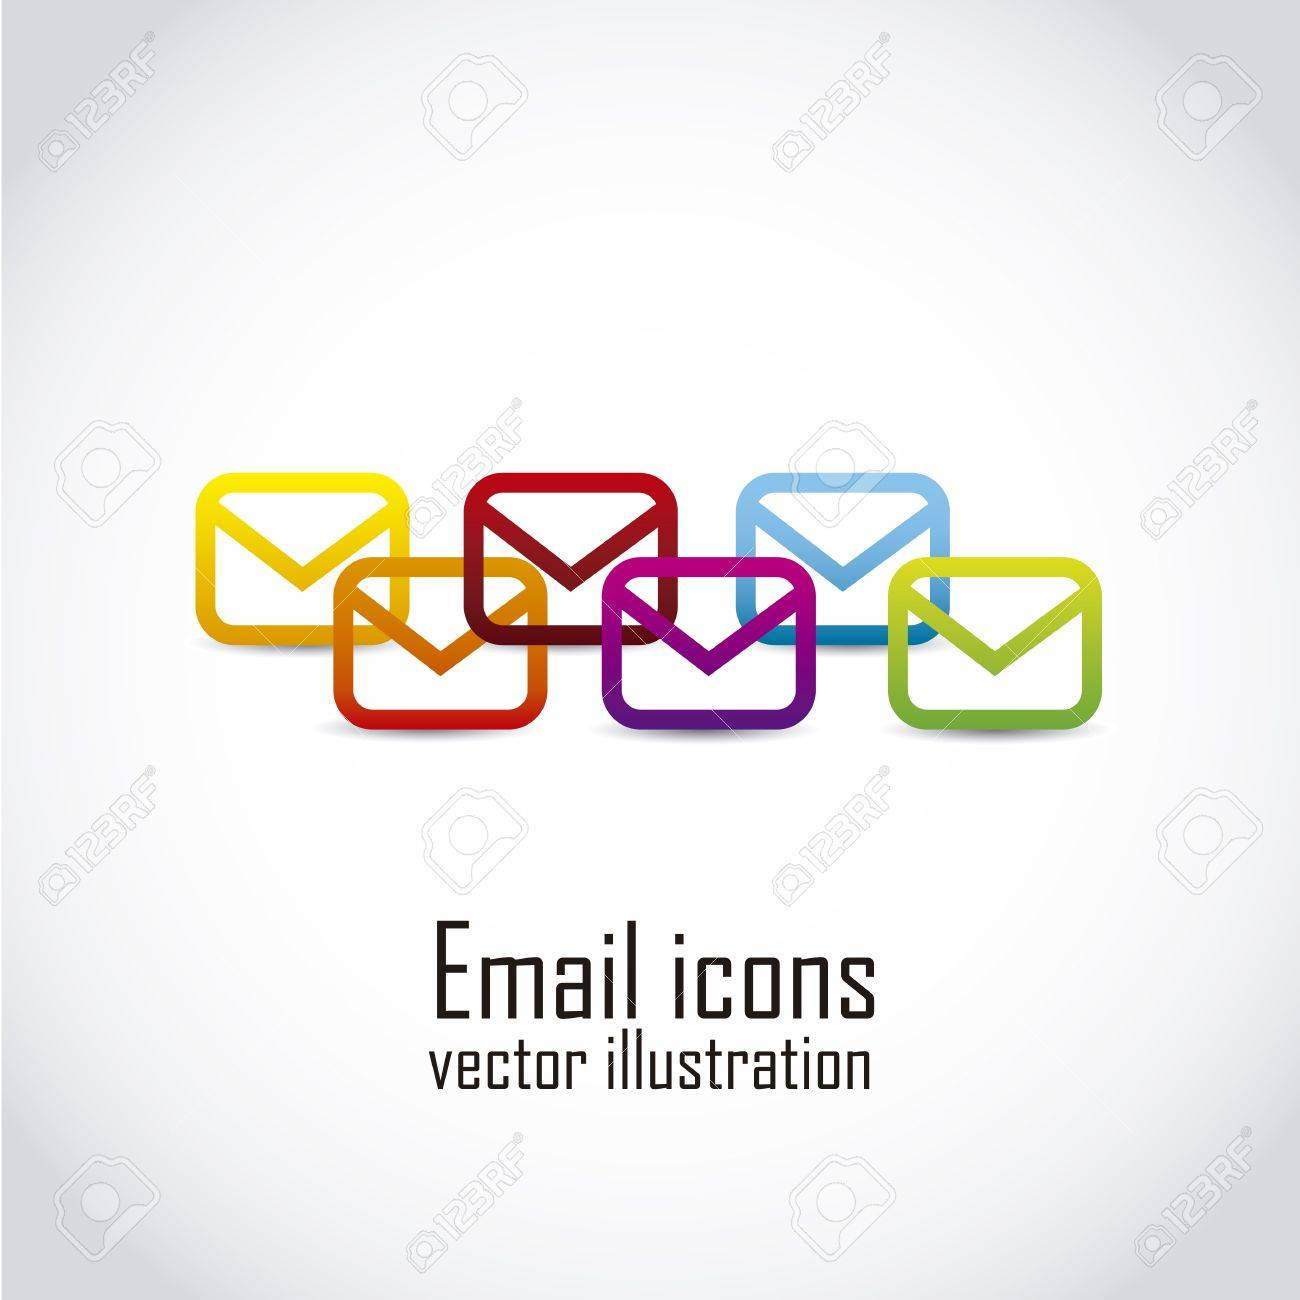 email icons over white background. vector illustration Stock Vector - 19179549